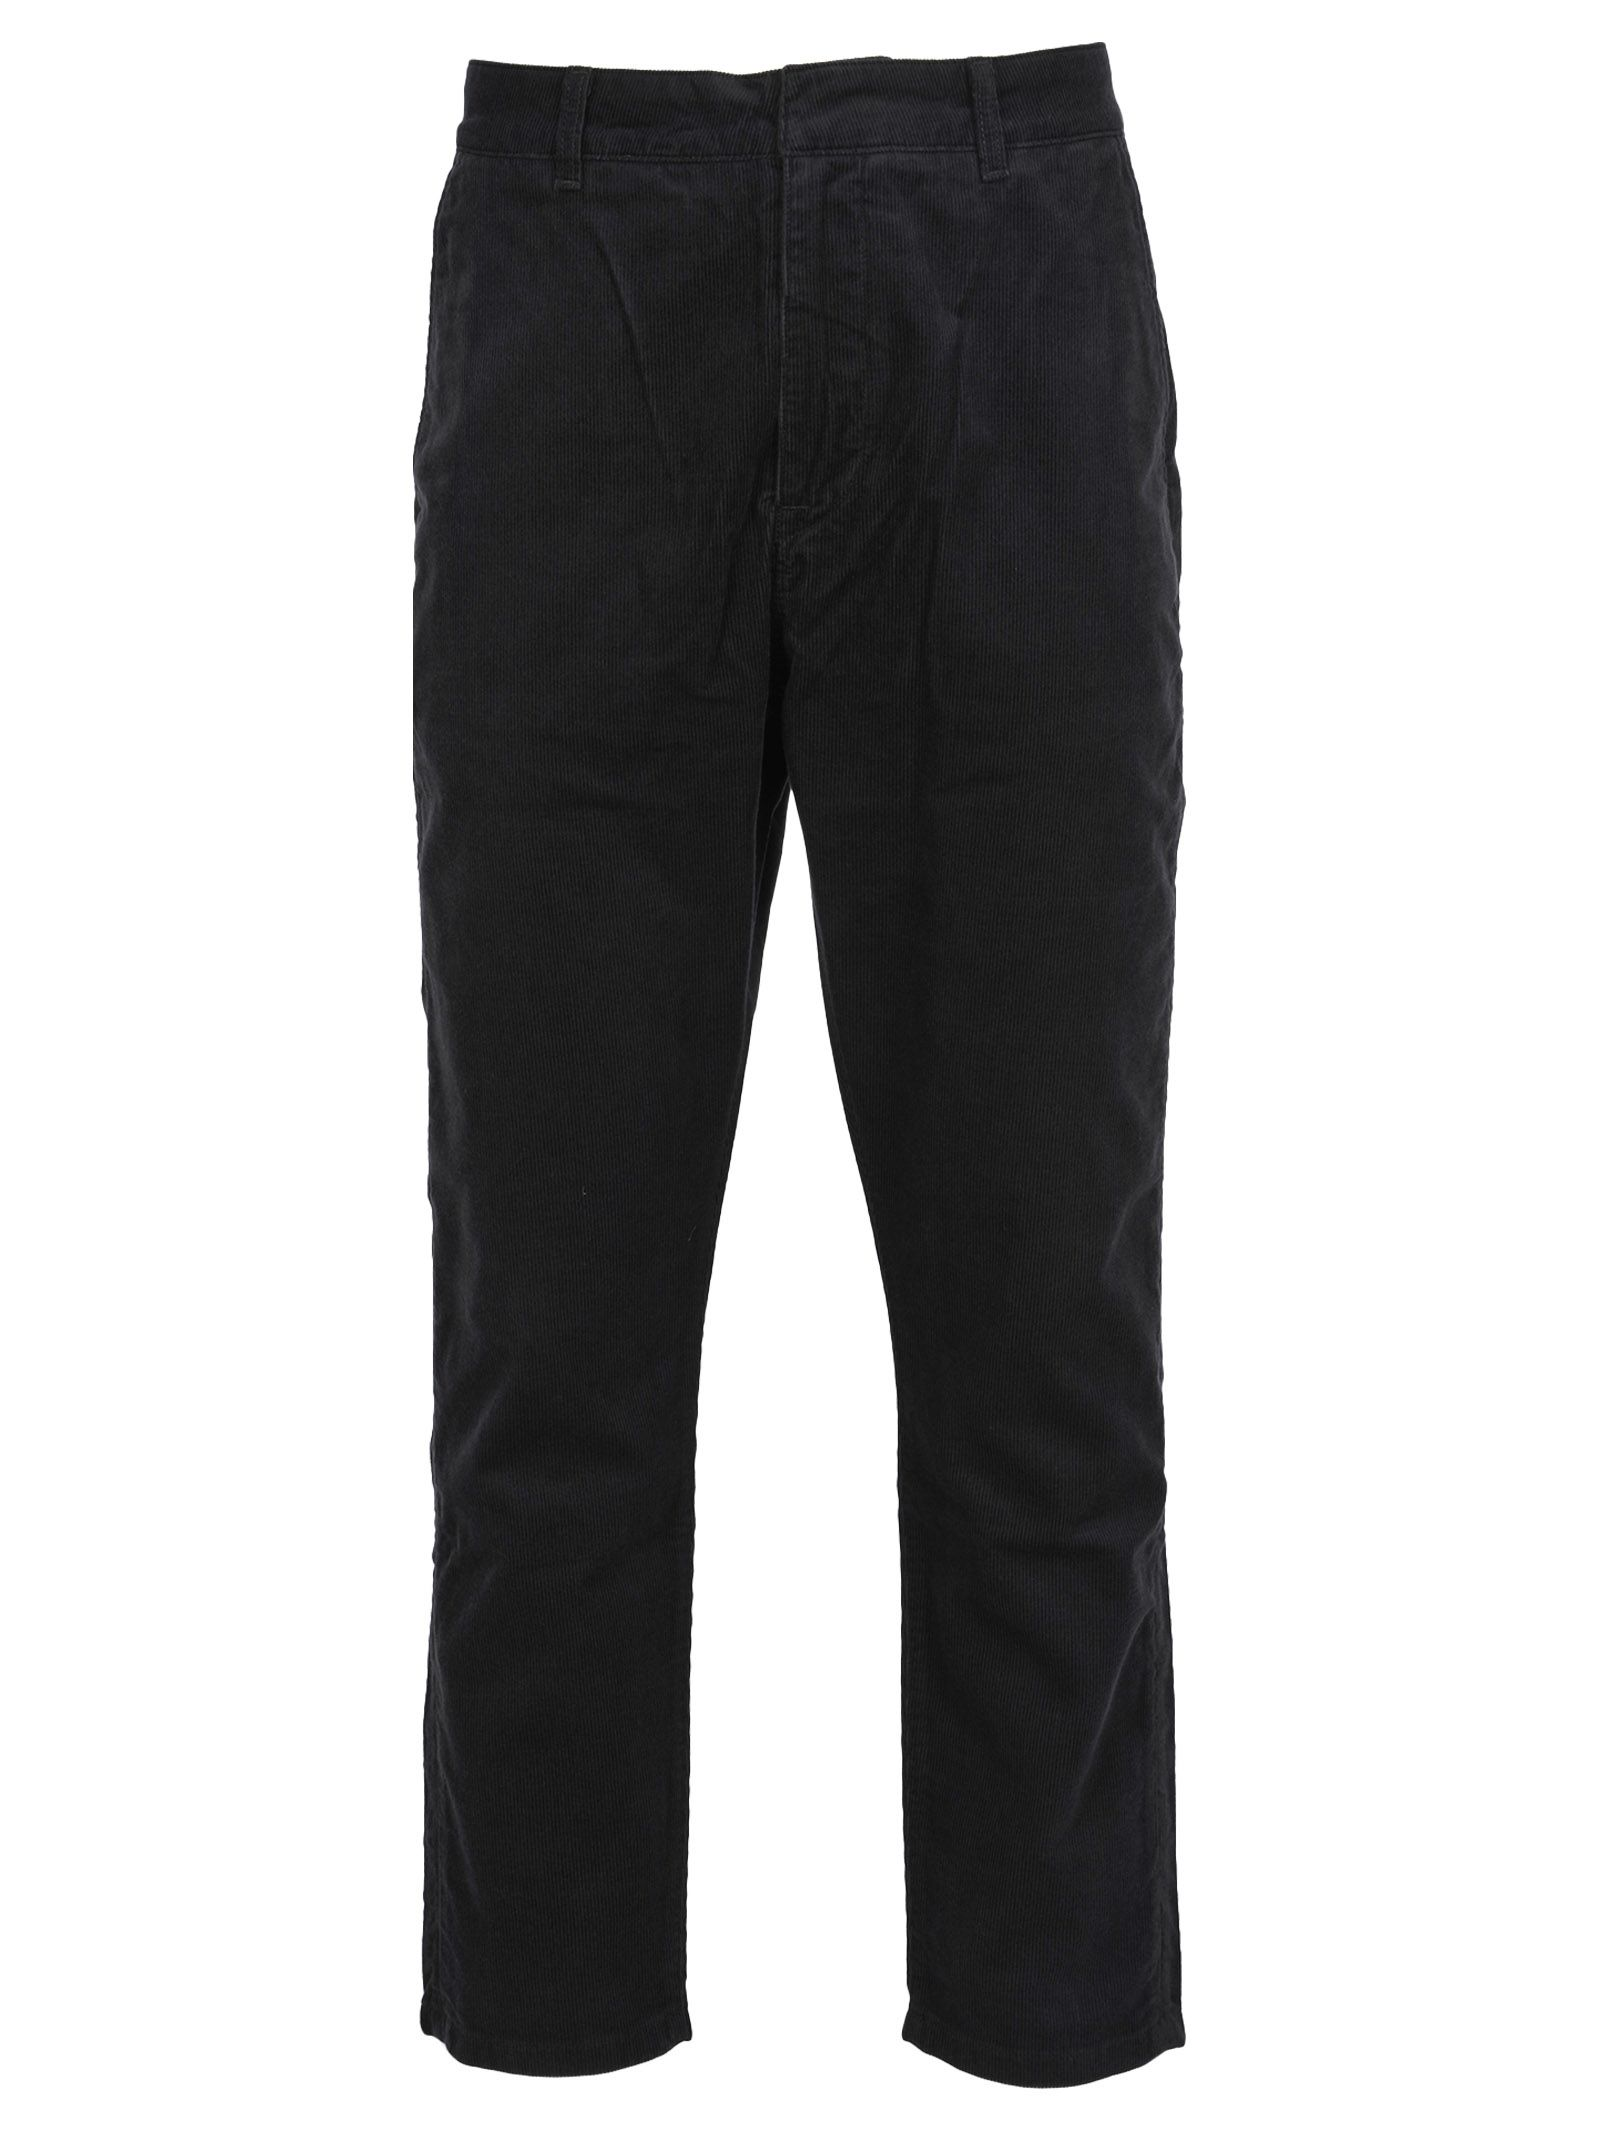 Levis Made & crafted Chino Velluto